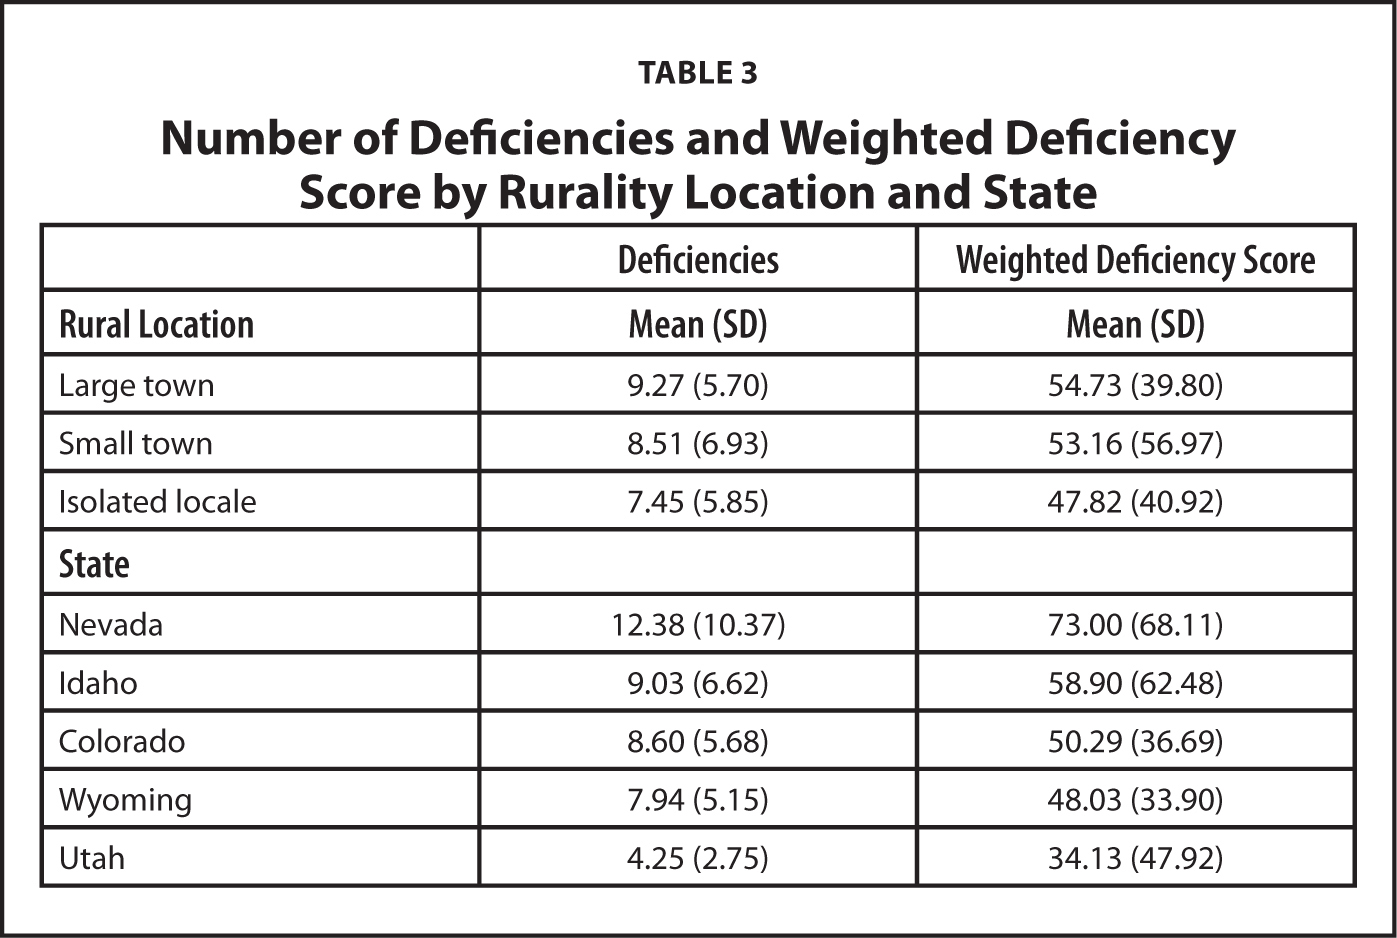 Number of Deficiencies and Weighted Deficiency Score by Rurality Location and State